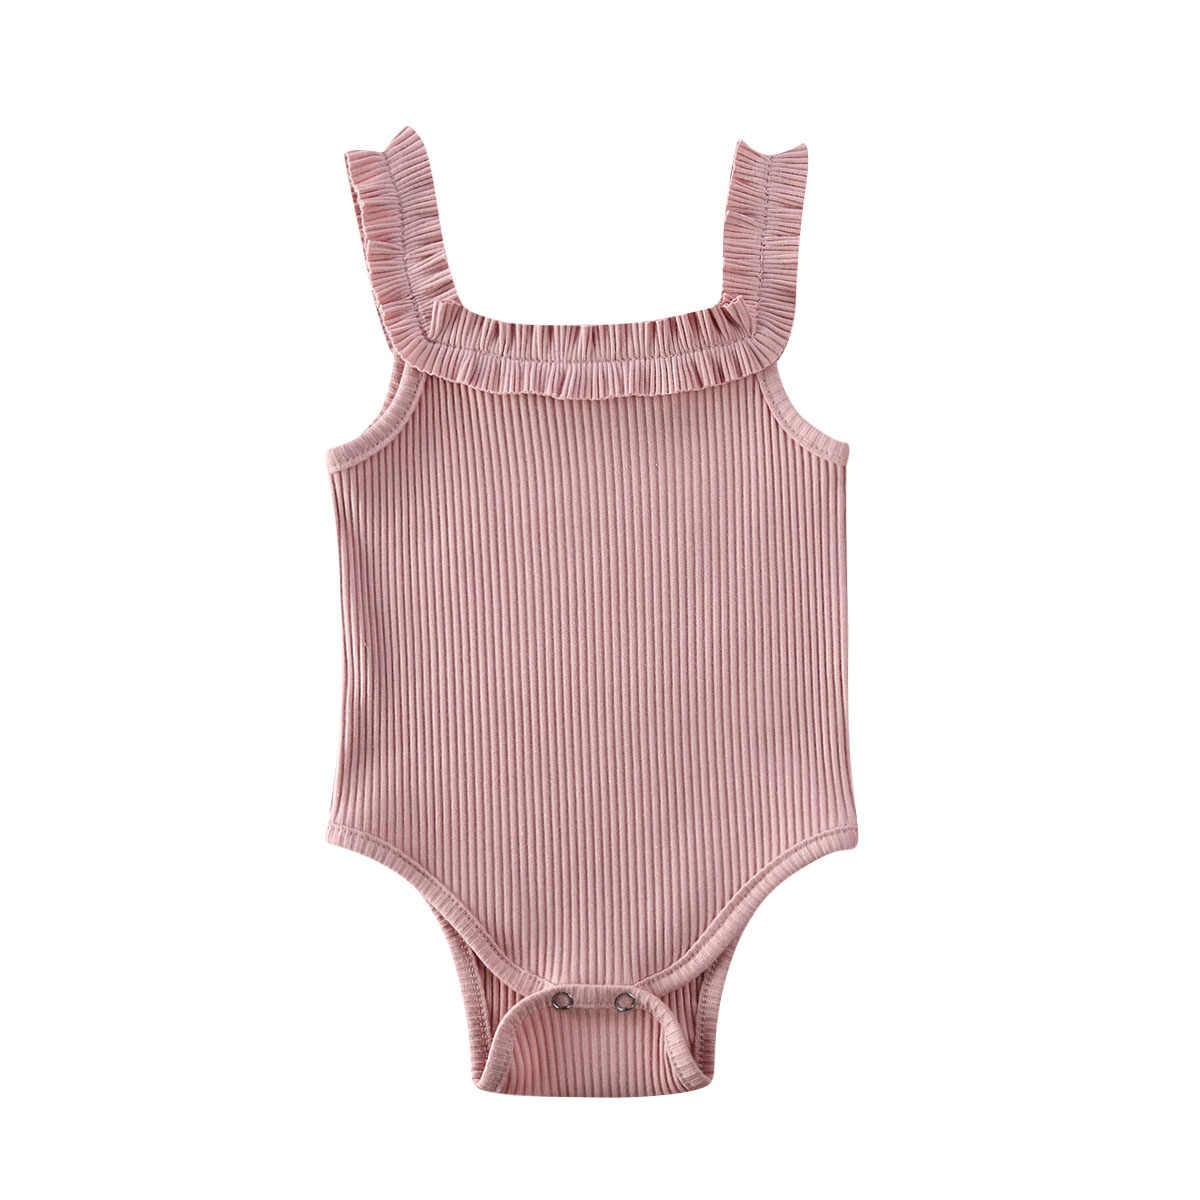 2020 Baby Summer Clothing Newbown Baby Girl Sleeveless Cotton Bodysuit Ribbed Ruffled Jumpsuits Solid Playsuits 3M-24M